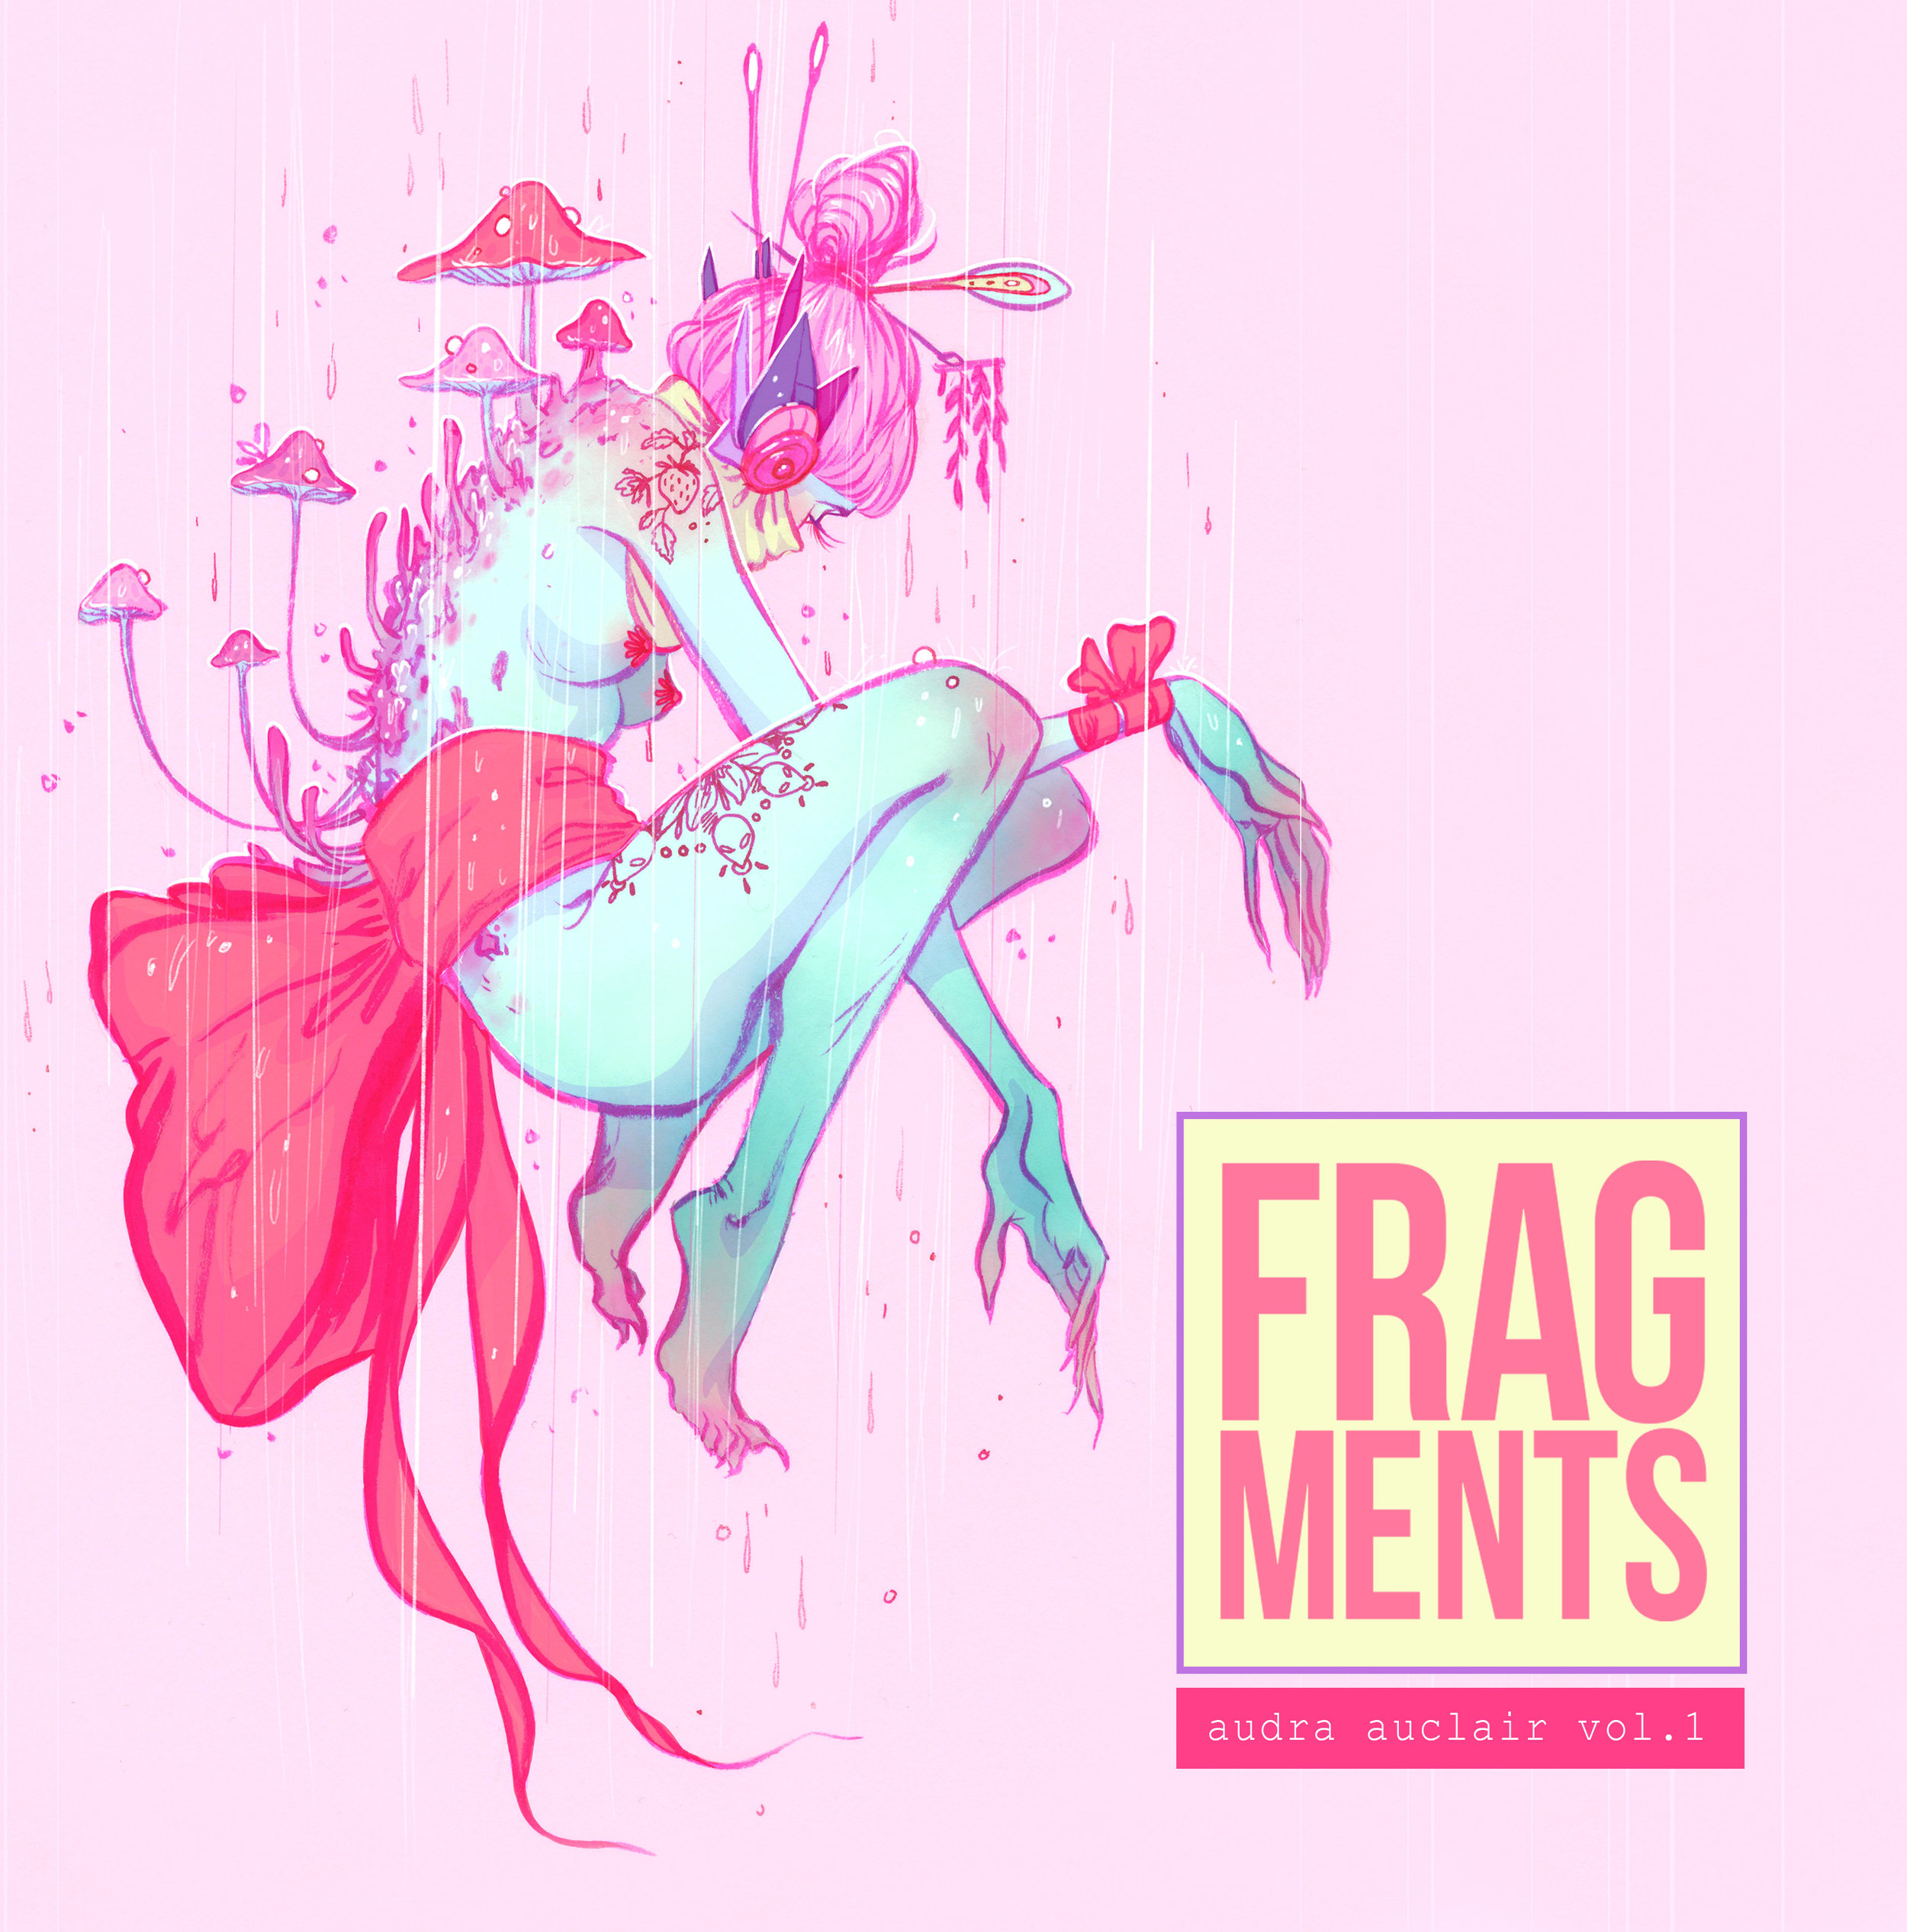 """FRAGMENTS Vol.1 (2018) - FRAGMENTS Vol.1 is 112 pages and 8"""" x 8"""". It's a collection of Audra's sketches, studies and miscellaneous work created from 2013-2017. The mediums include pencil, ink, gouache, watercolour and digital format.This is the 2nd print run of this book. Compared to the first run this 2nd run has thicker gloss inner pages which drastically improved the colour of the artwork. The art has been enlarged to fit the entire page when possible. Many pages have been added that include new art and some of the additional pages are due to increasing the size of the artwork."""